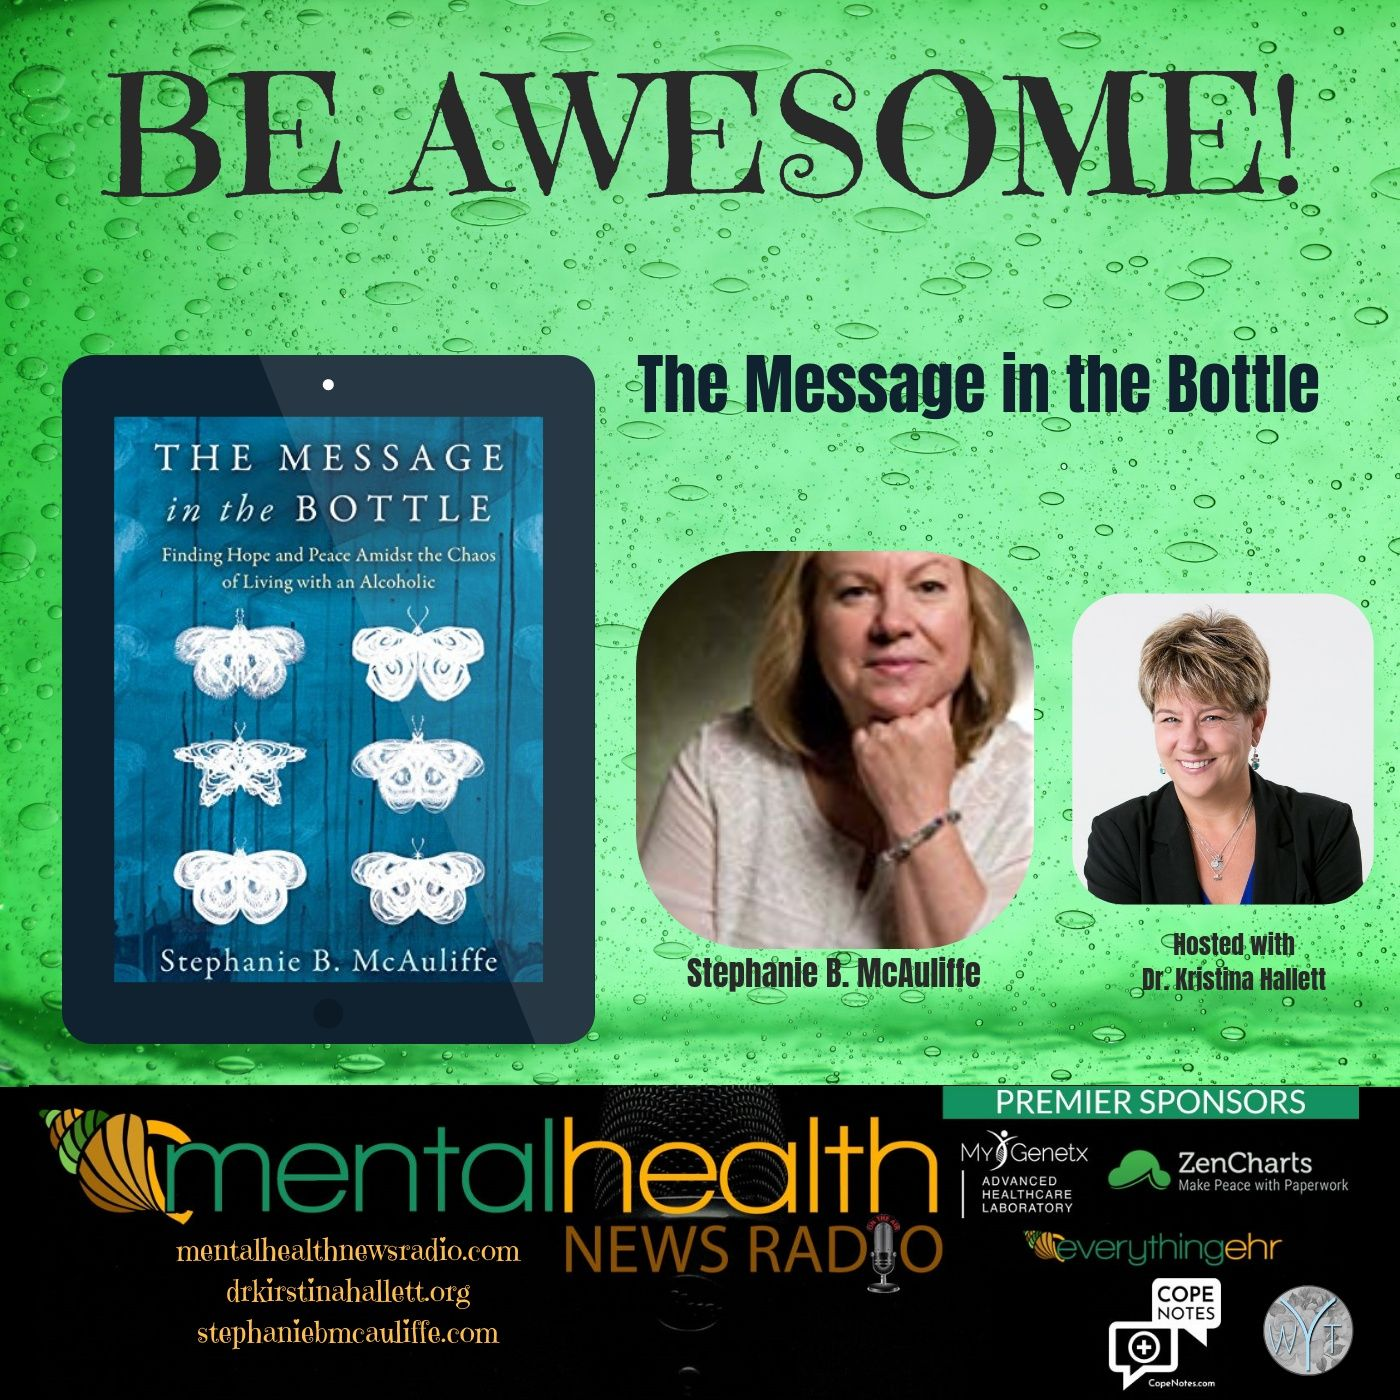 Mental Health News Radio - Be Awesome: The Message in the Bottle with Stephanie B. McAuliffe